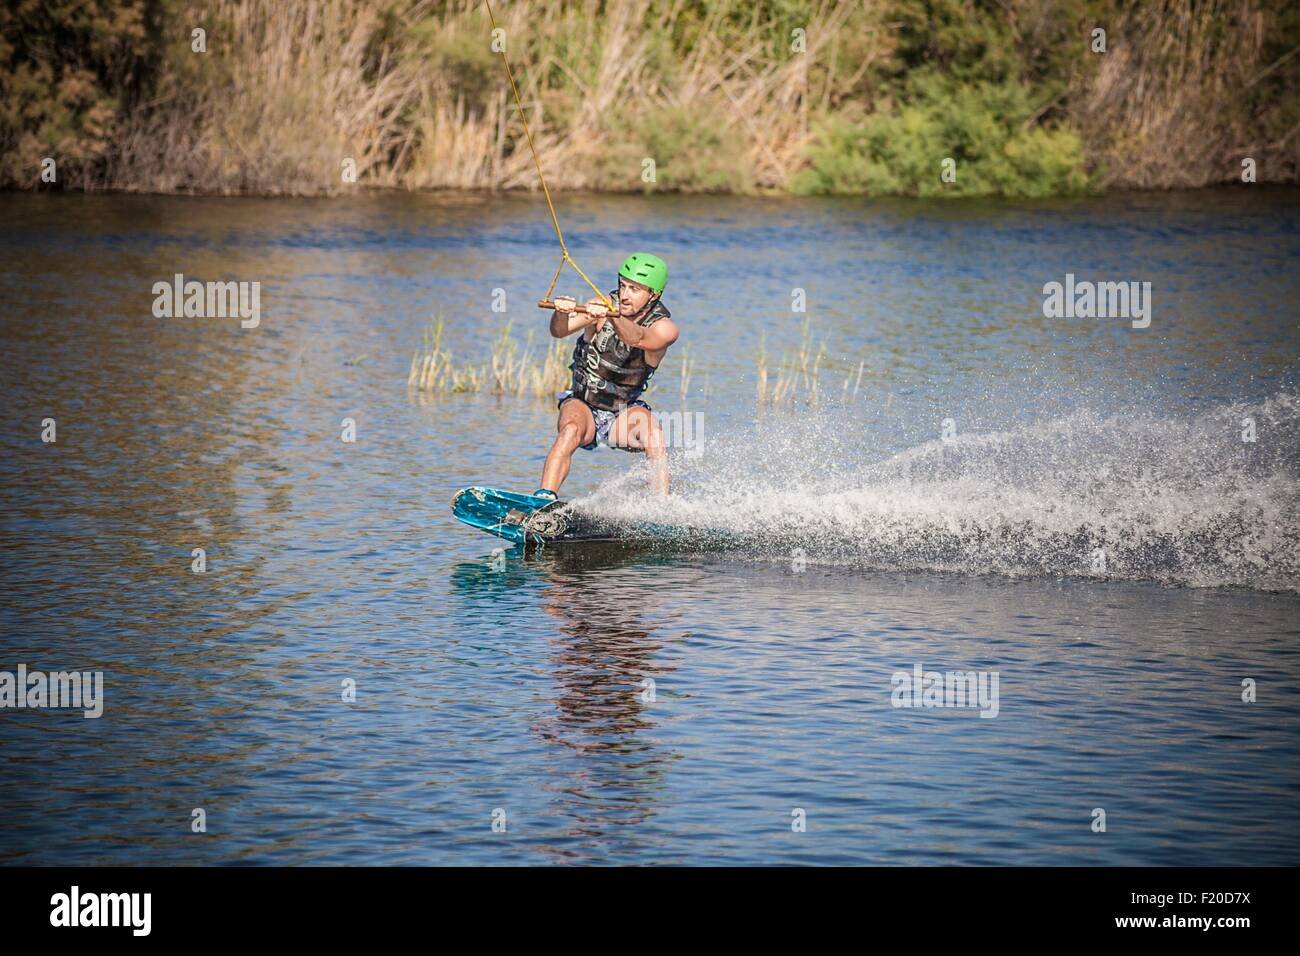 Young man wakeboarding in sea, Cagliari, Sardinia, Italy - Stock Image